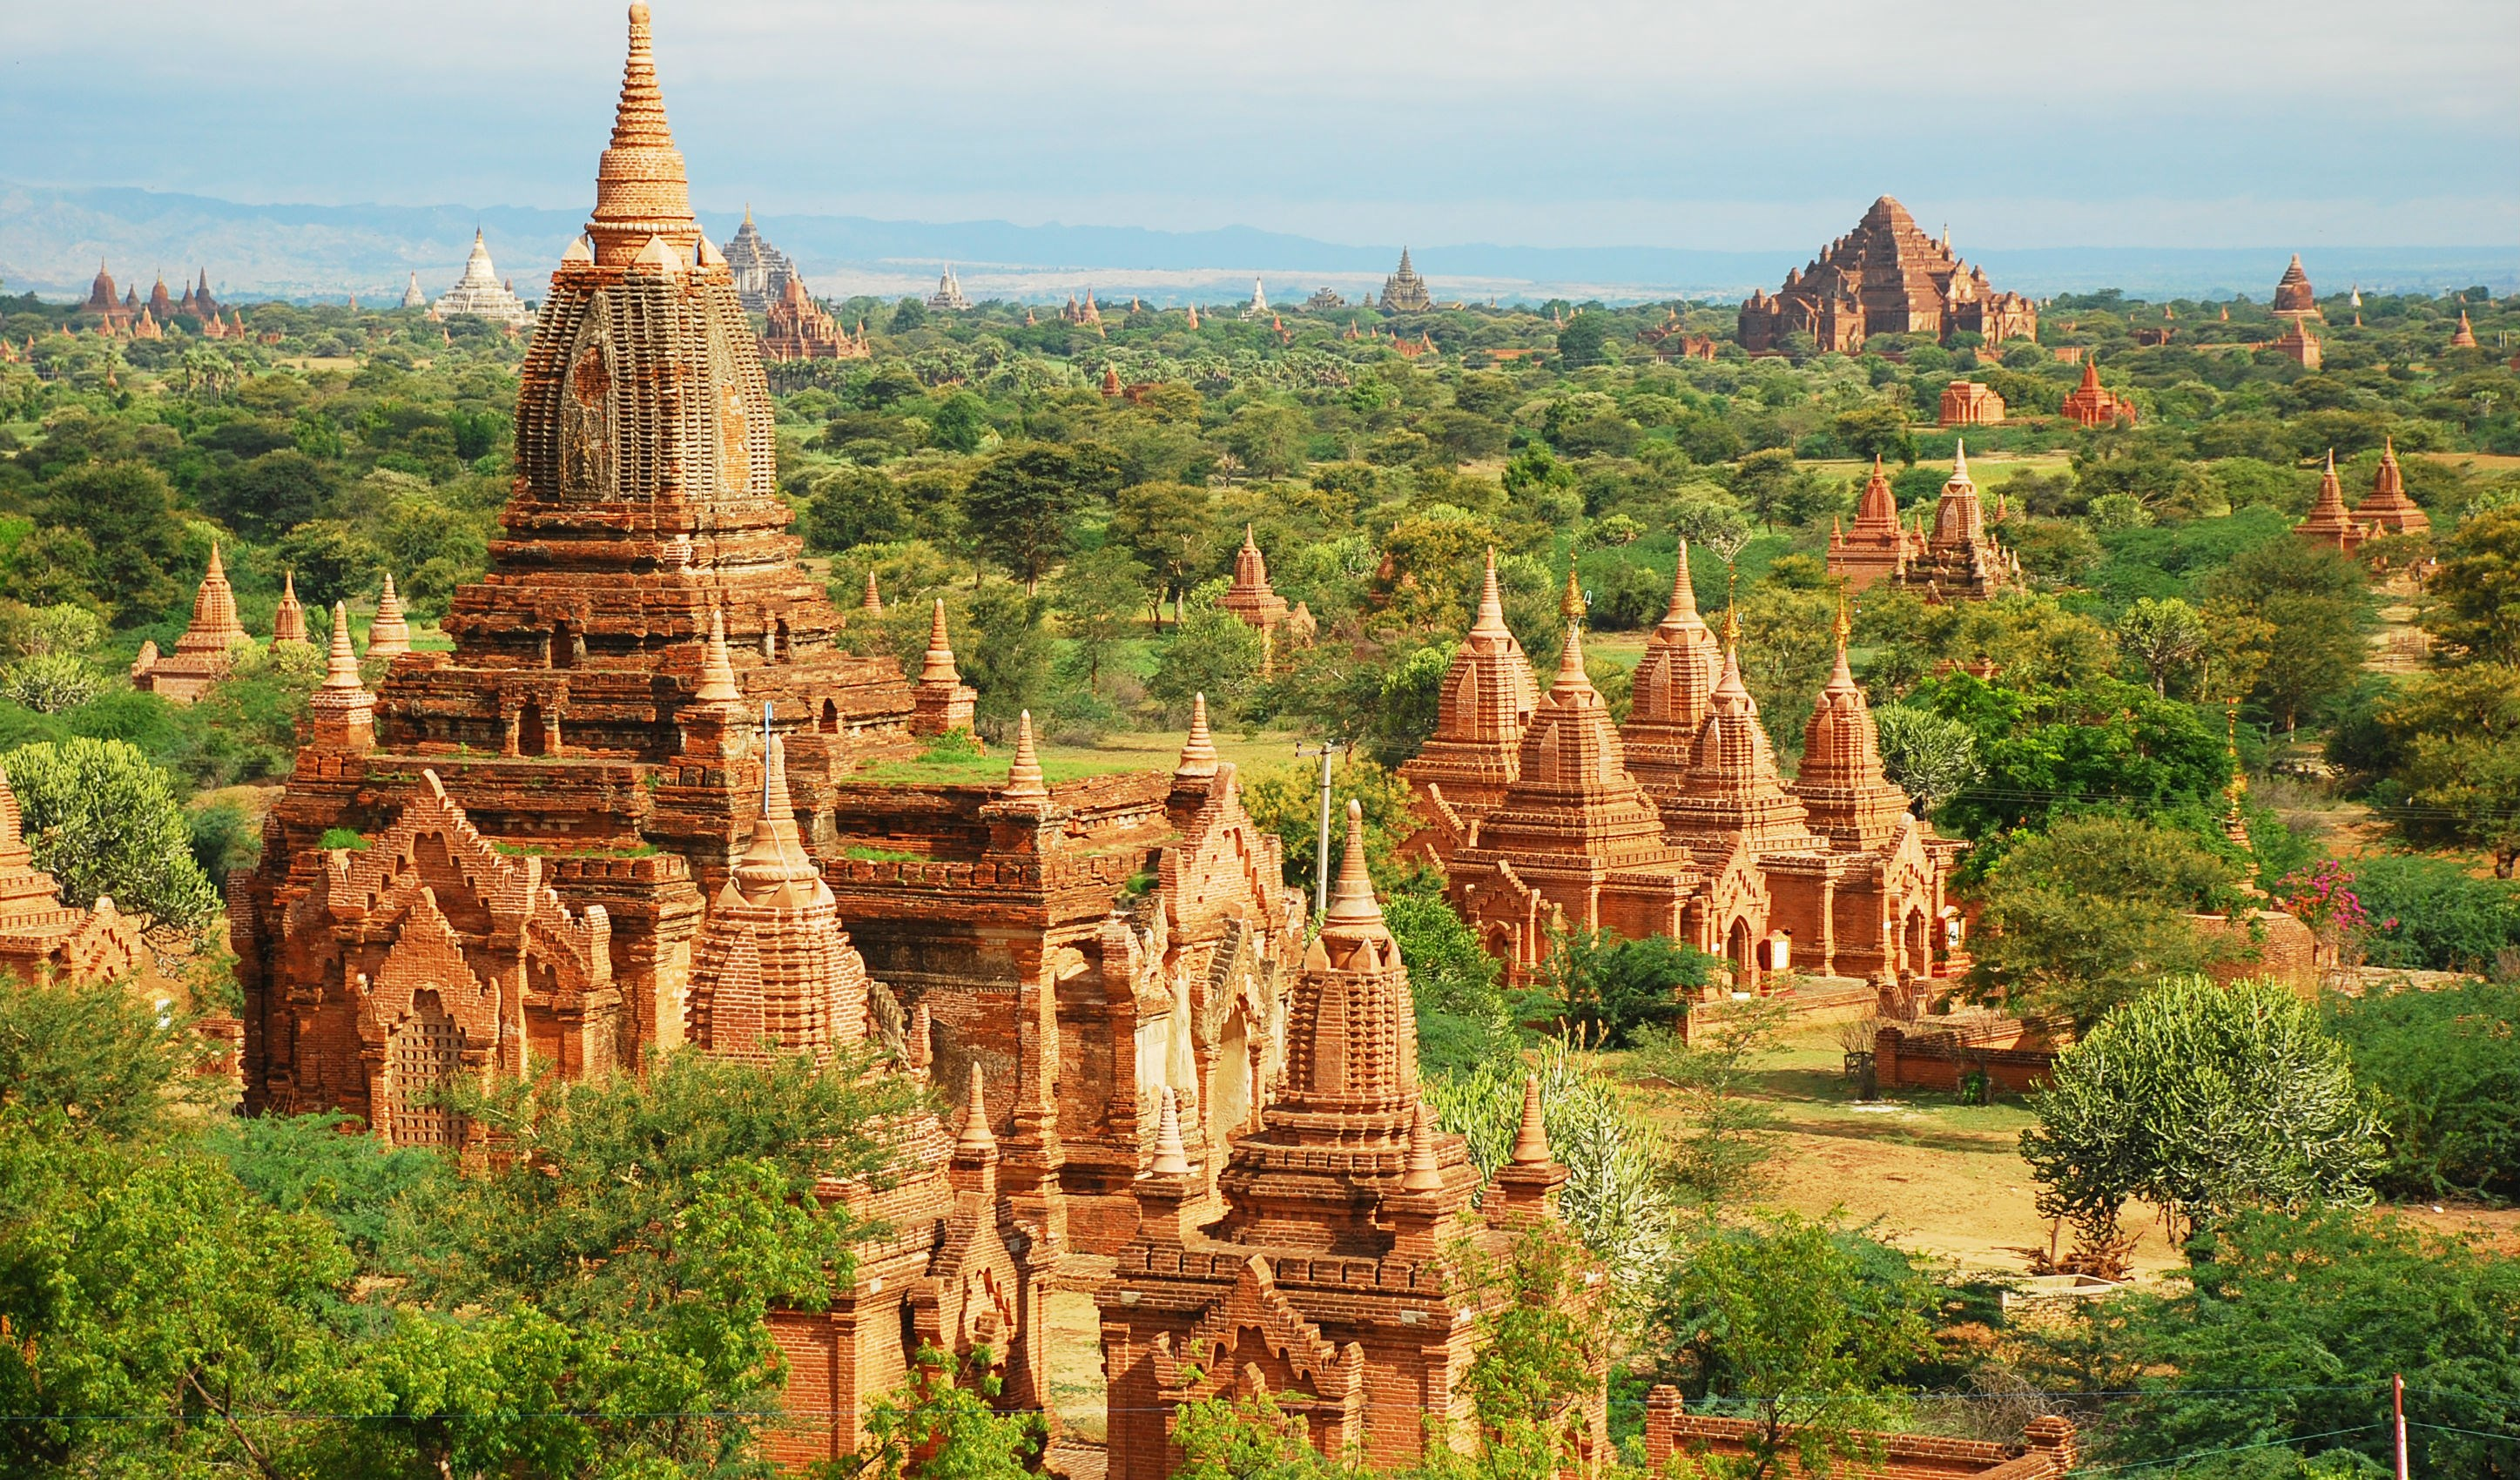 Began in Myanmar